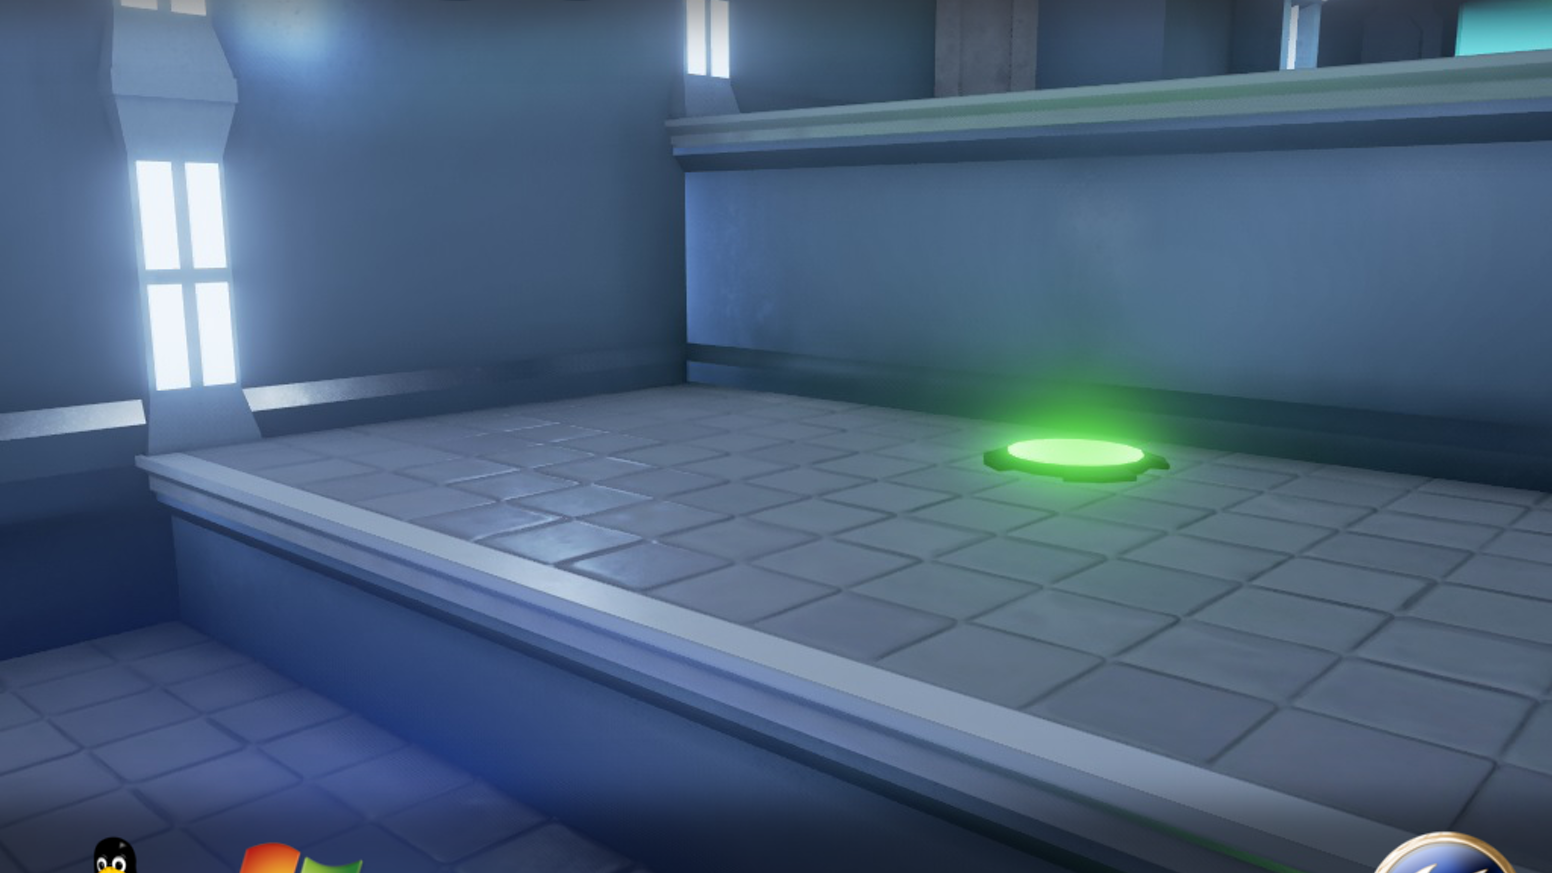 Jumper - Unreal Engine 4 - First Person Puzzle Game by Alan